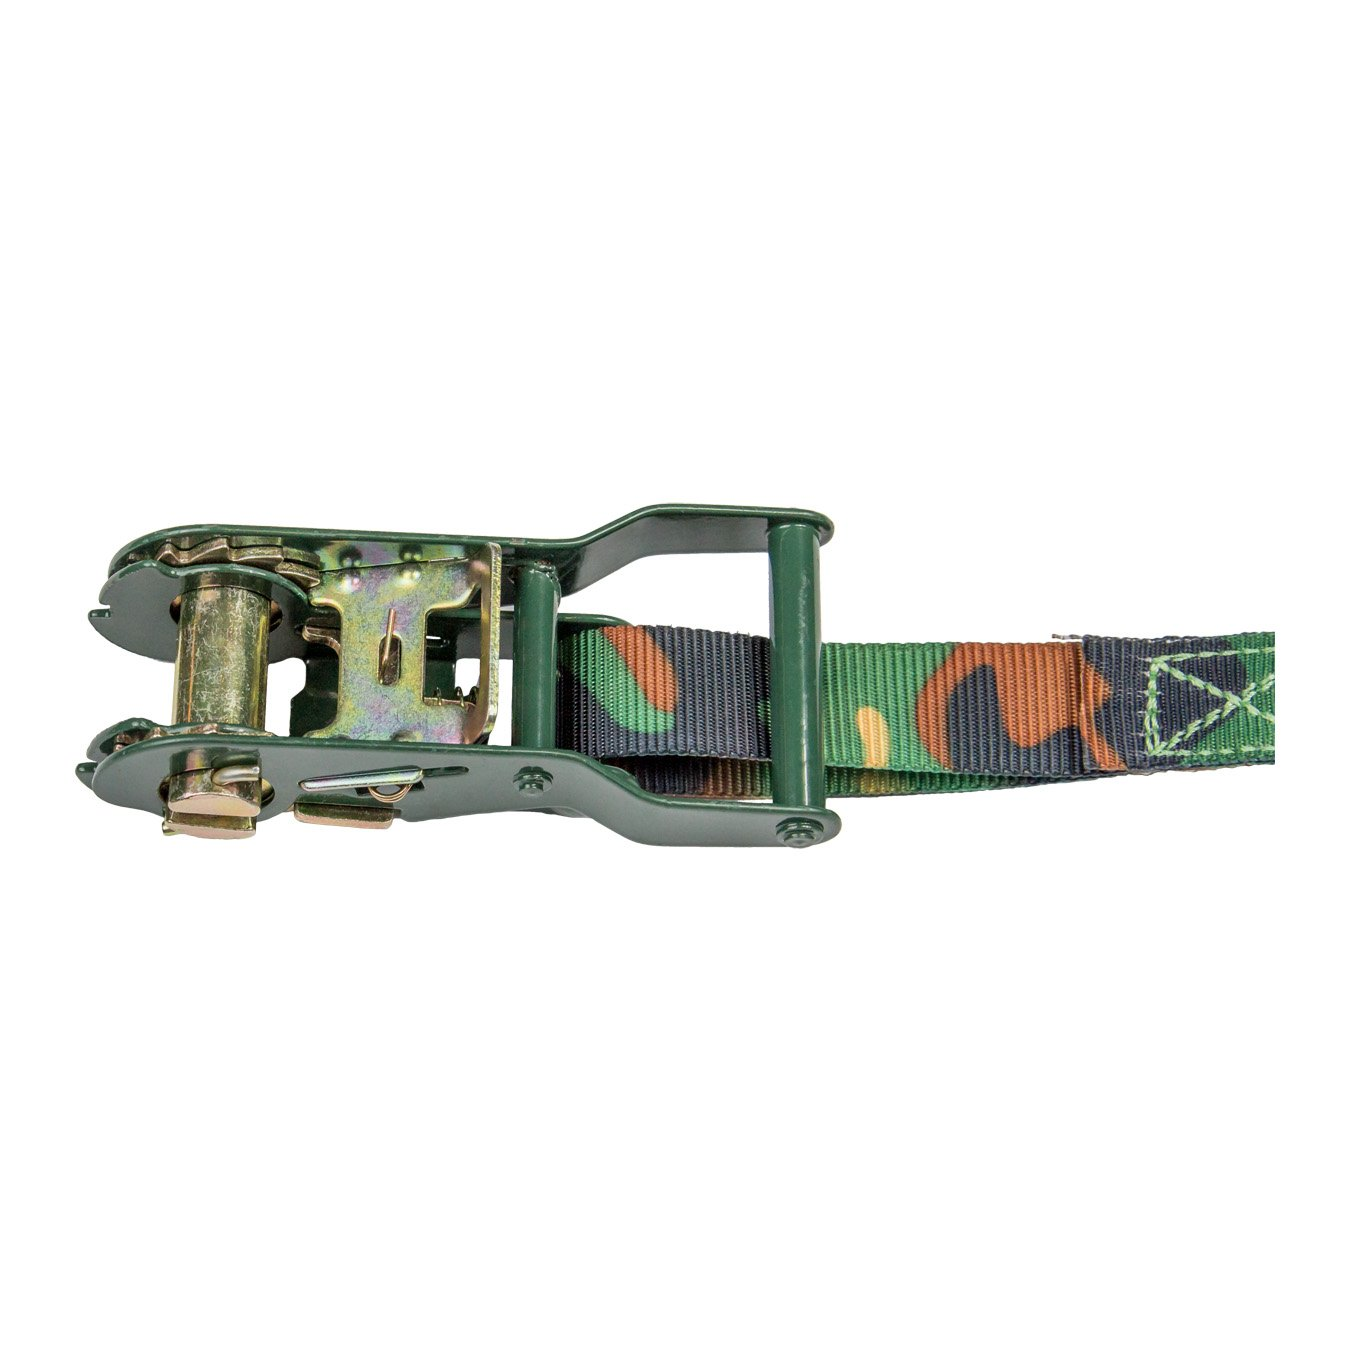 King 1 X 15 Ratcheting Tie Down Set Camouflage 2-PC Set 1,500 LBS Capacity